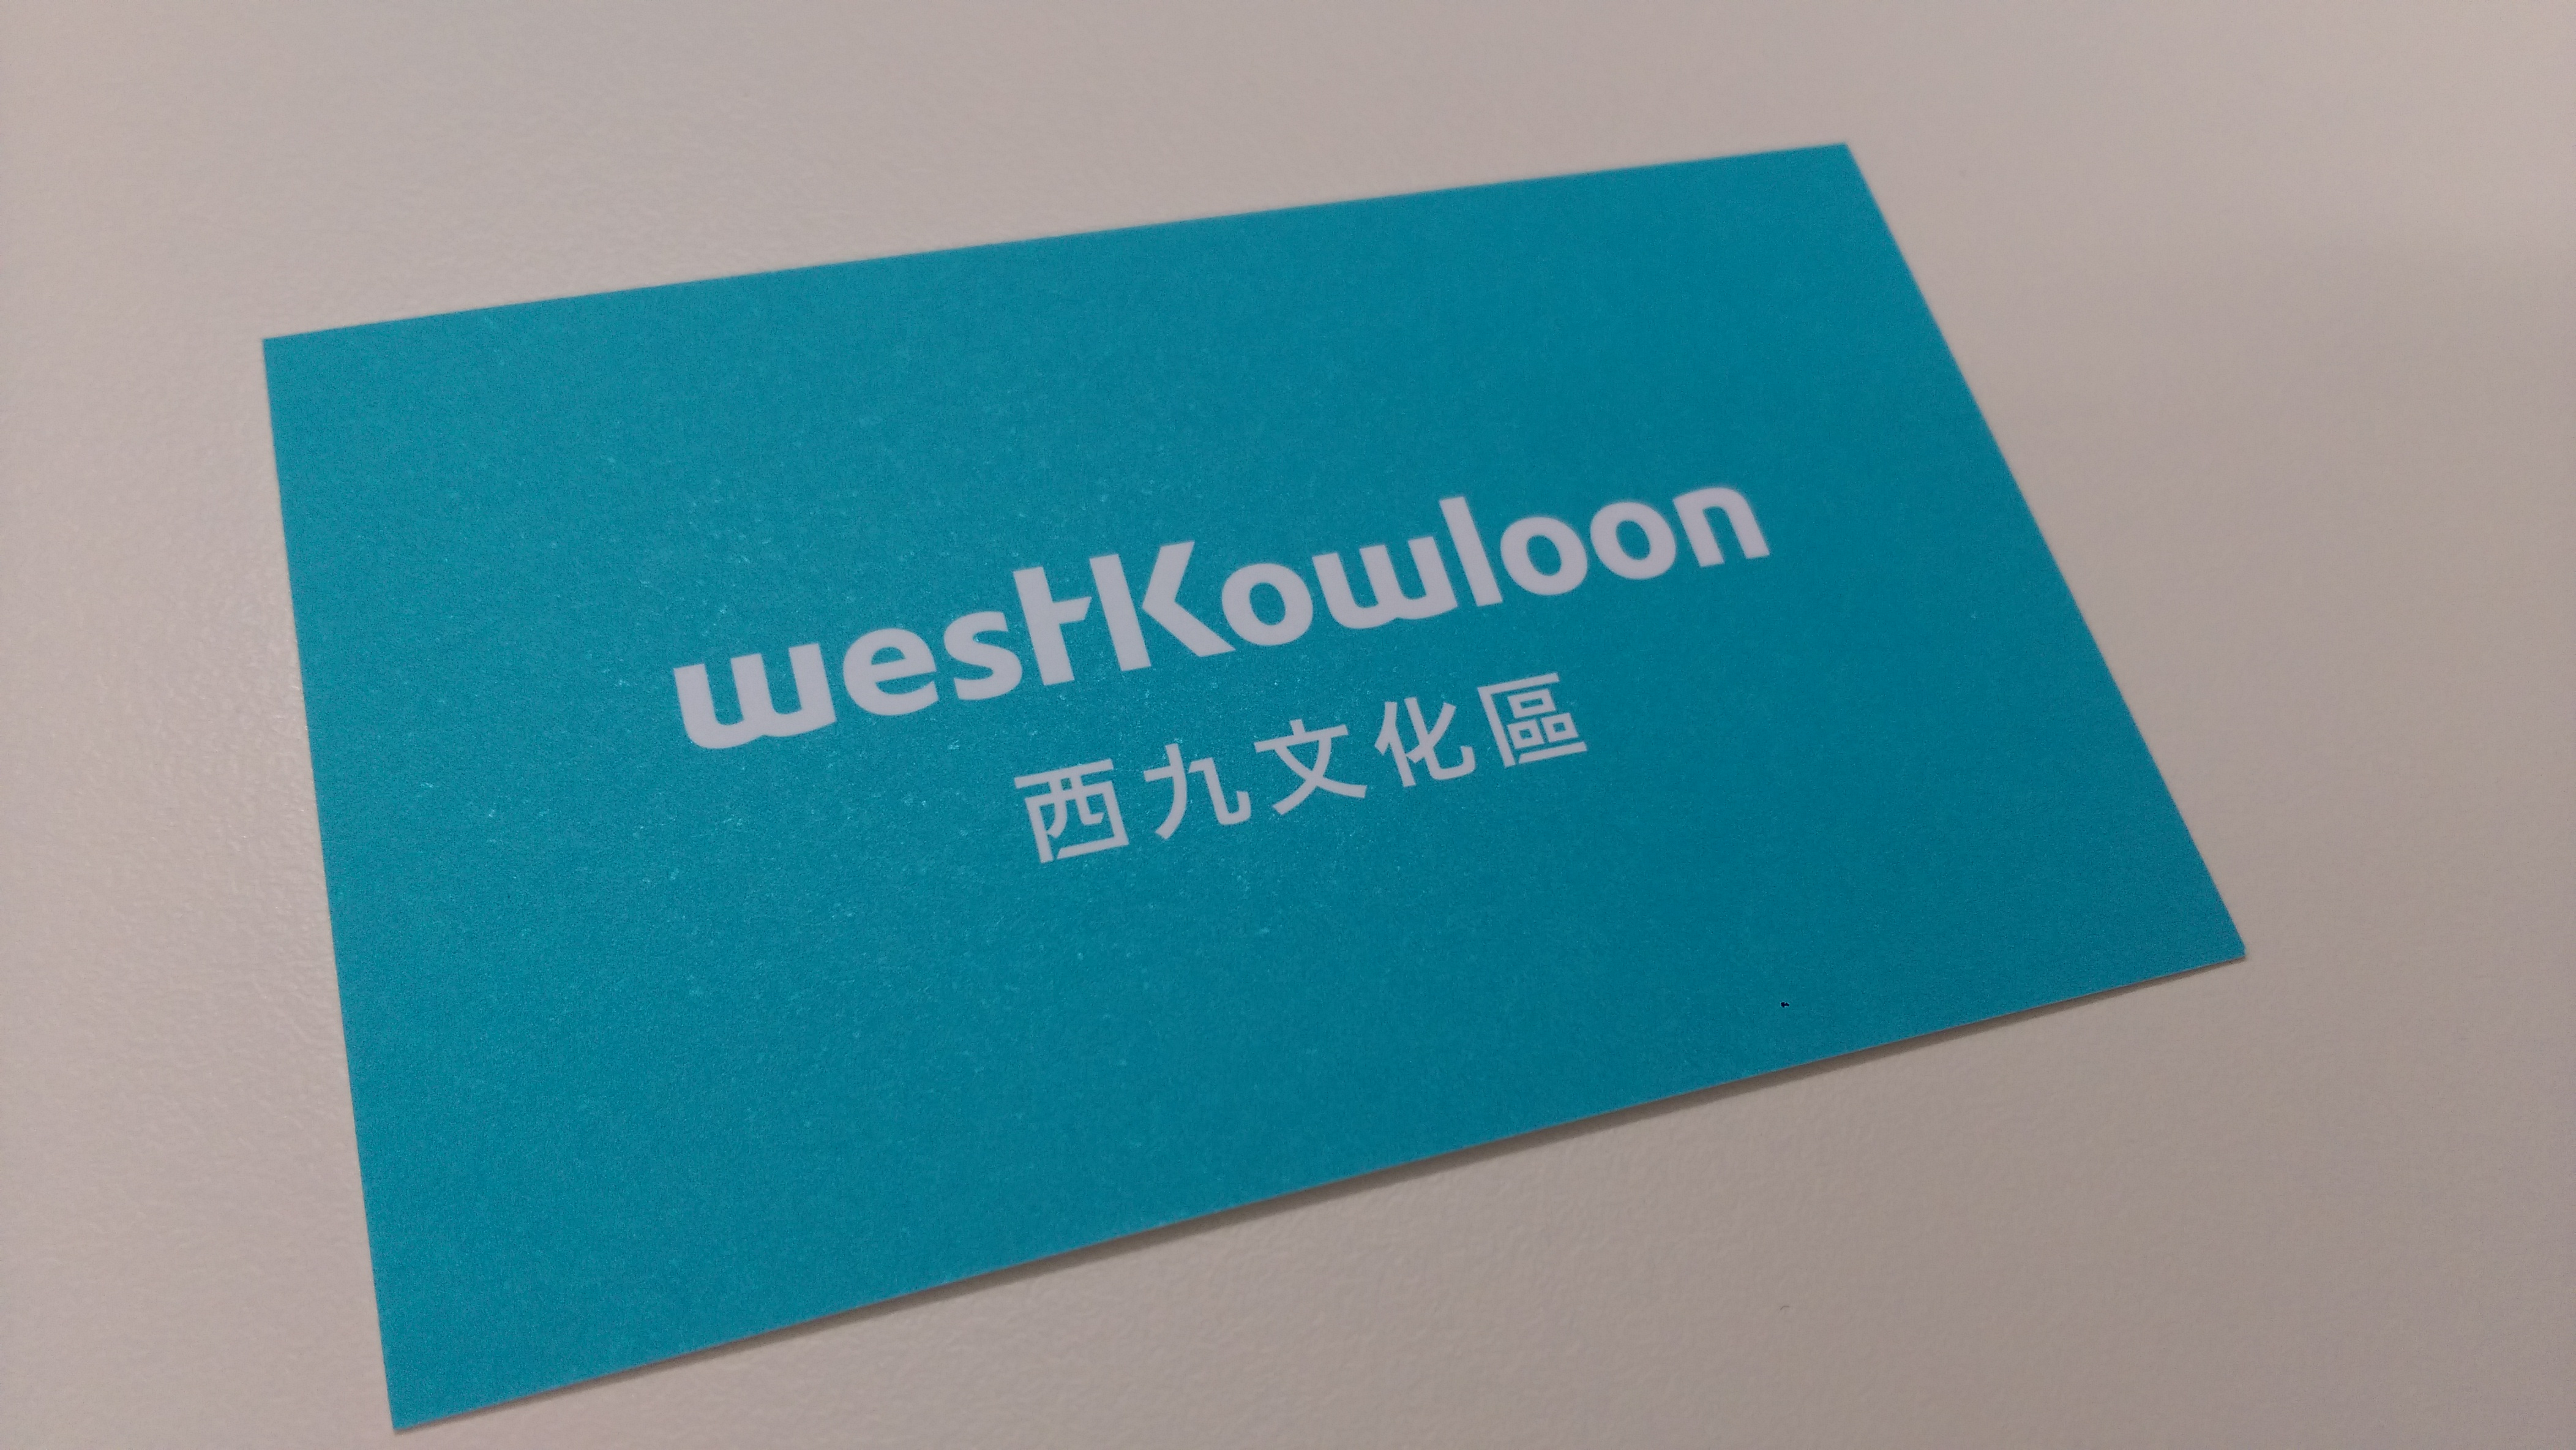 The eye-catching blue color name card shows WKCDA's dynamic character.